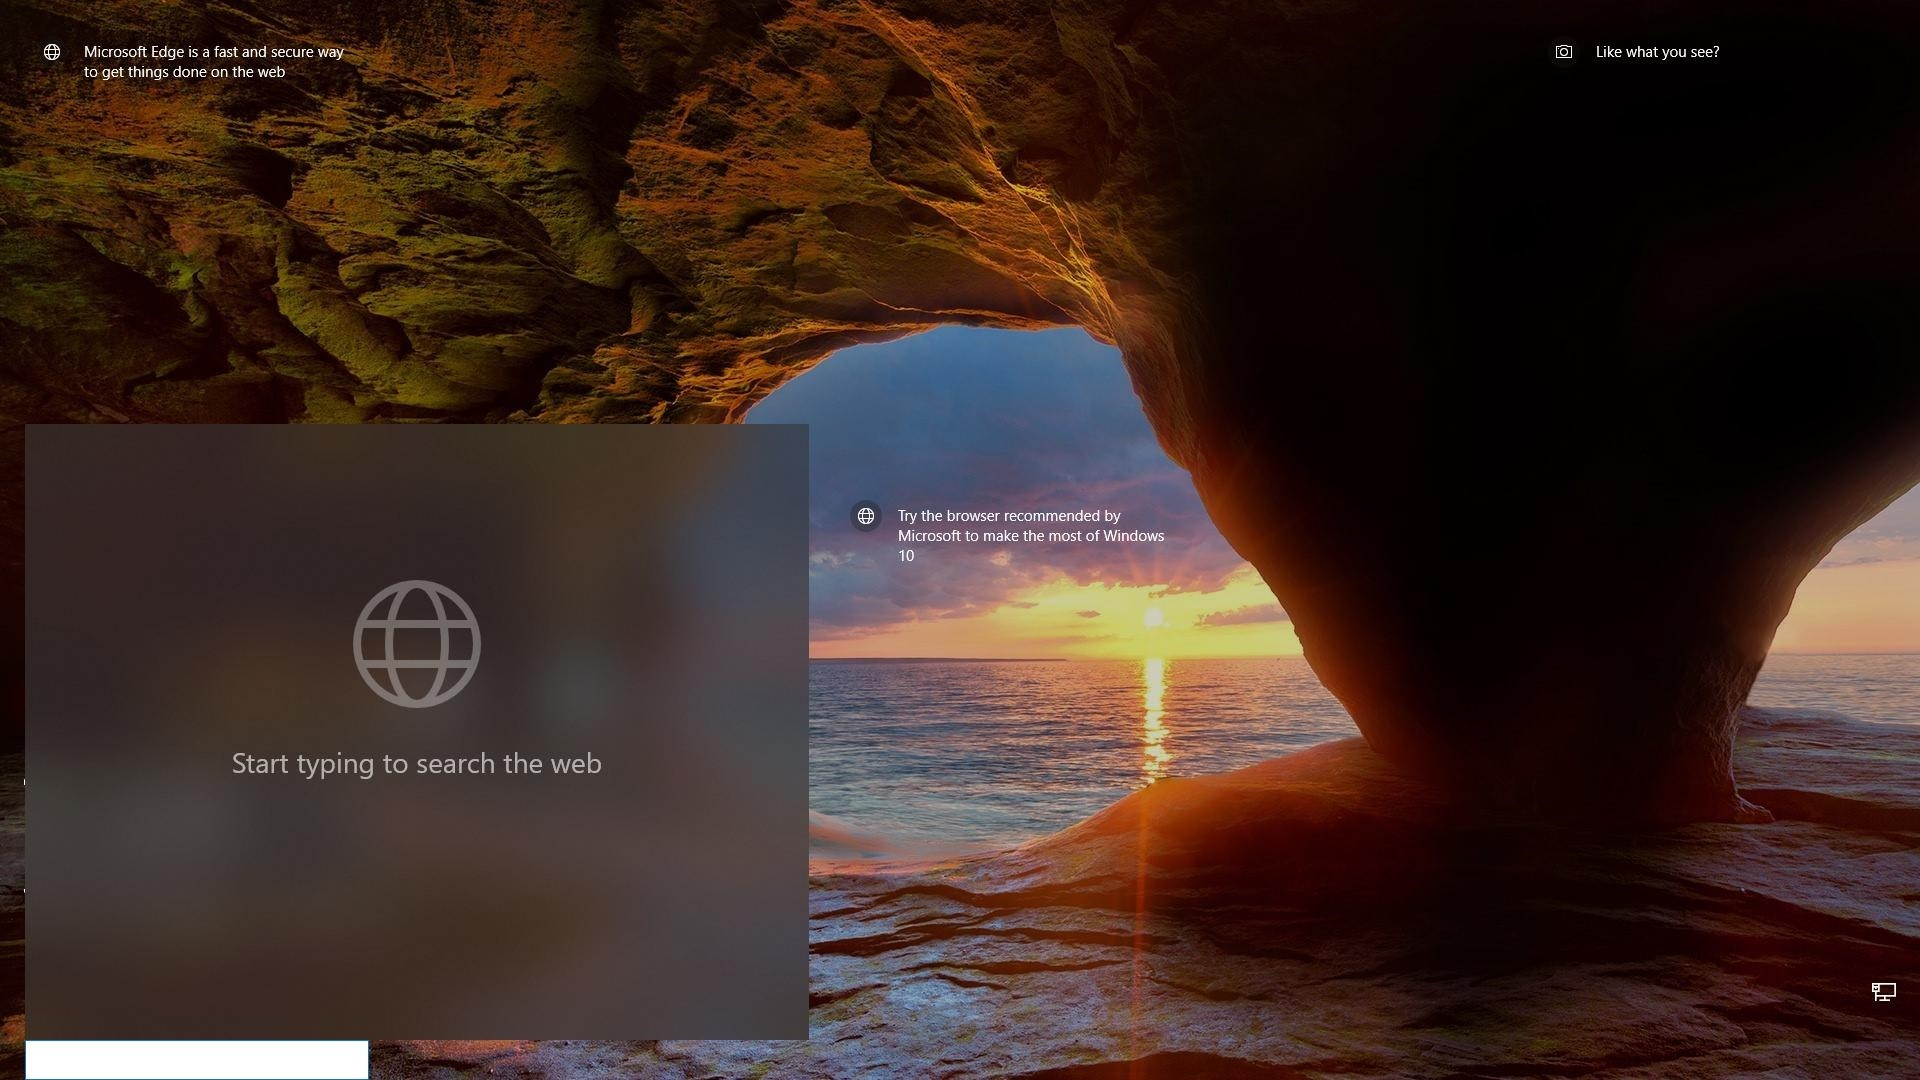 Microsoft Brings a Search Box on the Windows 10 Lock Screen